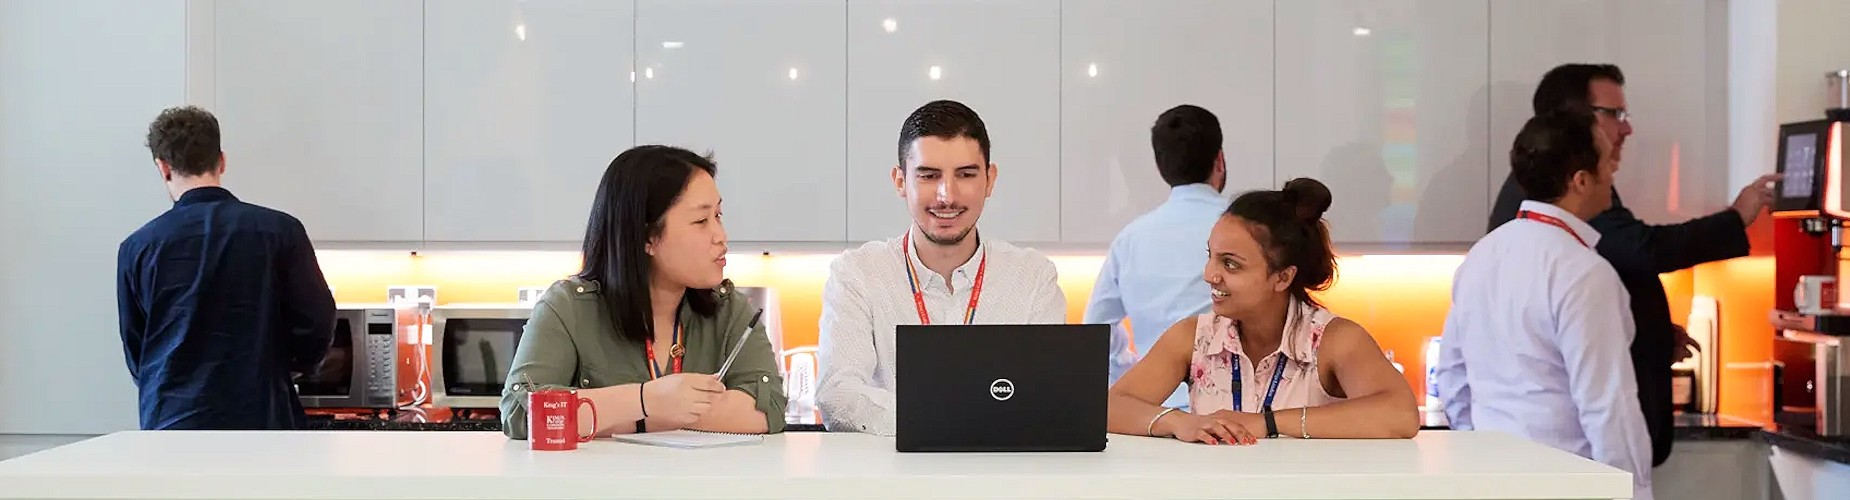 Group of people having a meeting in an office kitchen